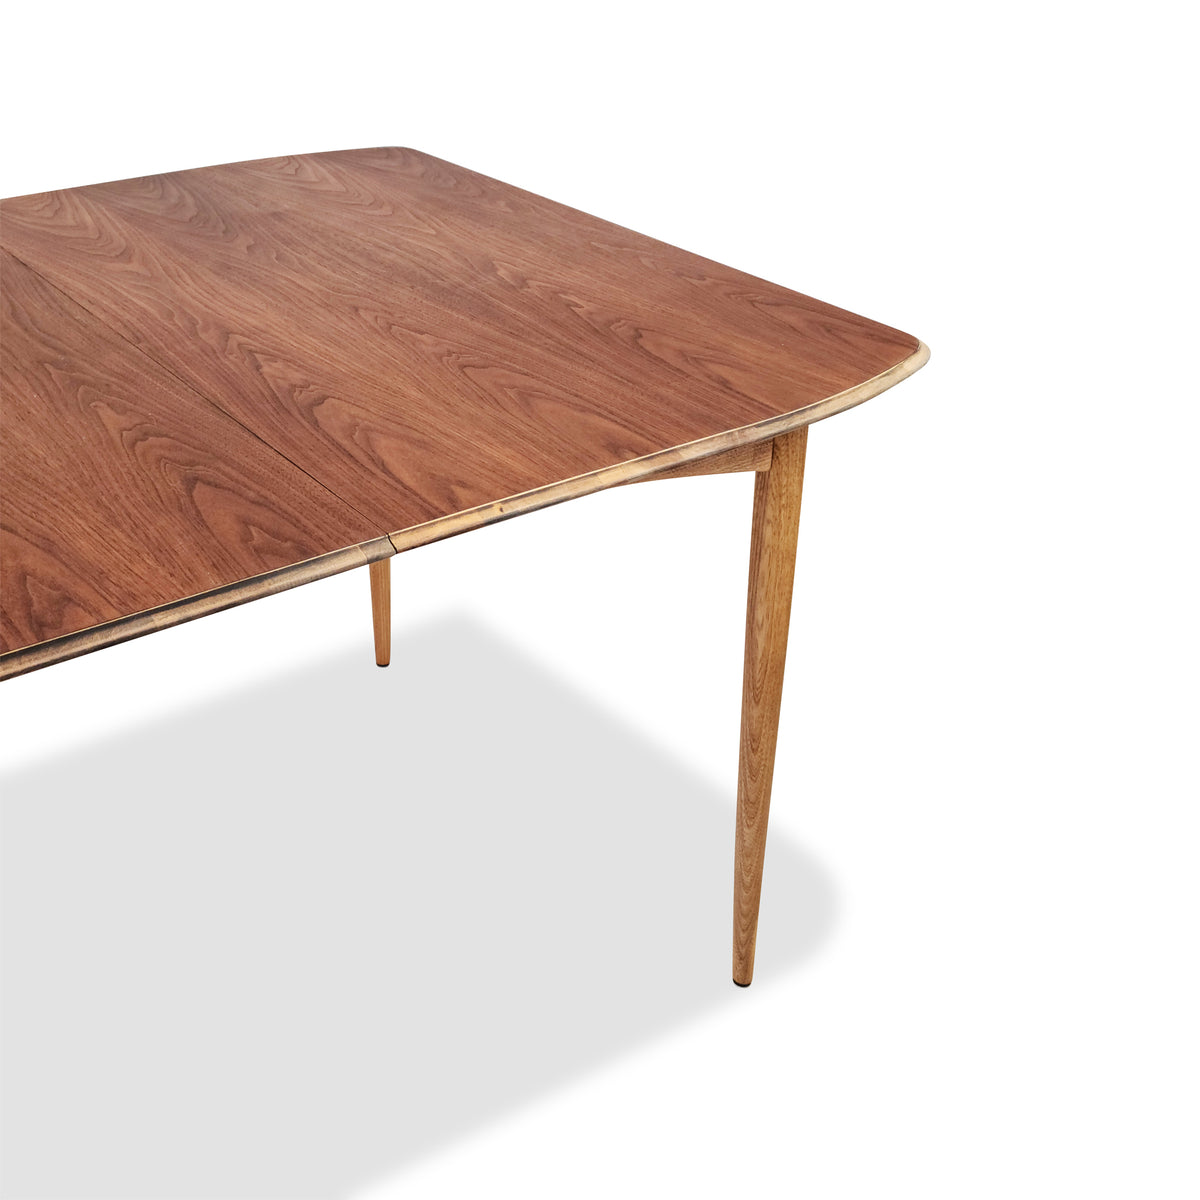 Walnut and Ash Dining Table by Deilcraft